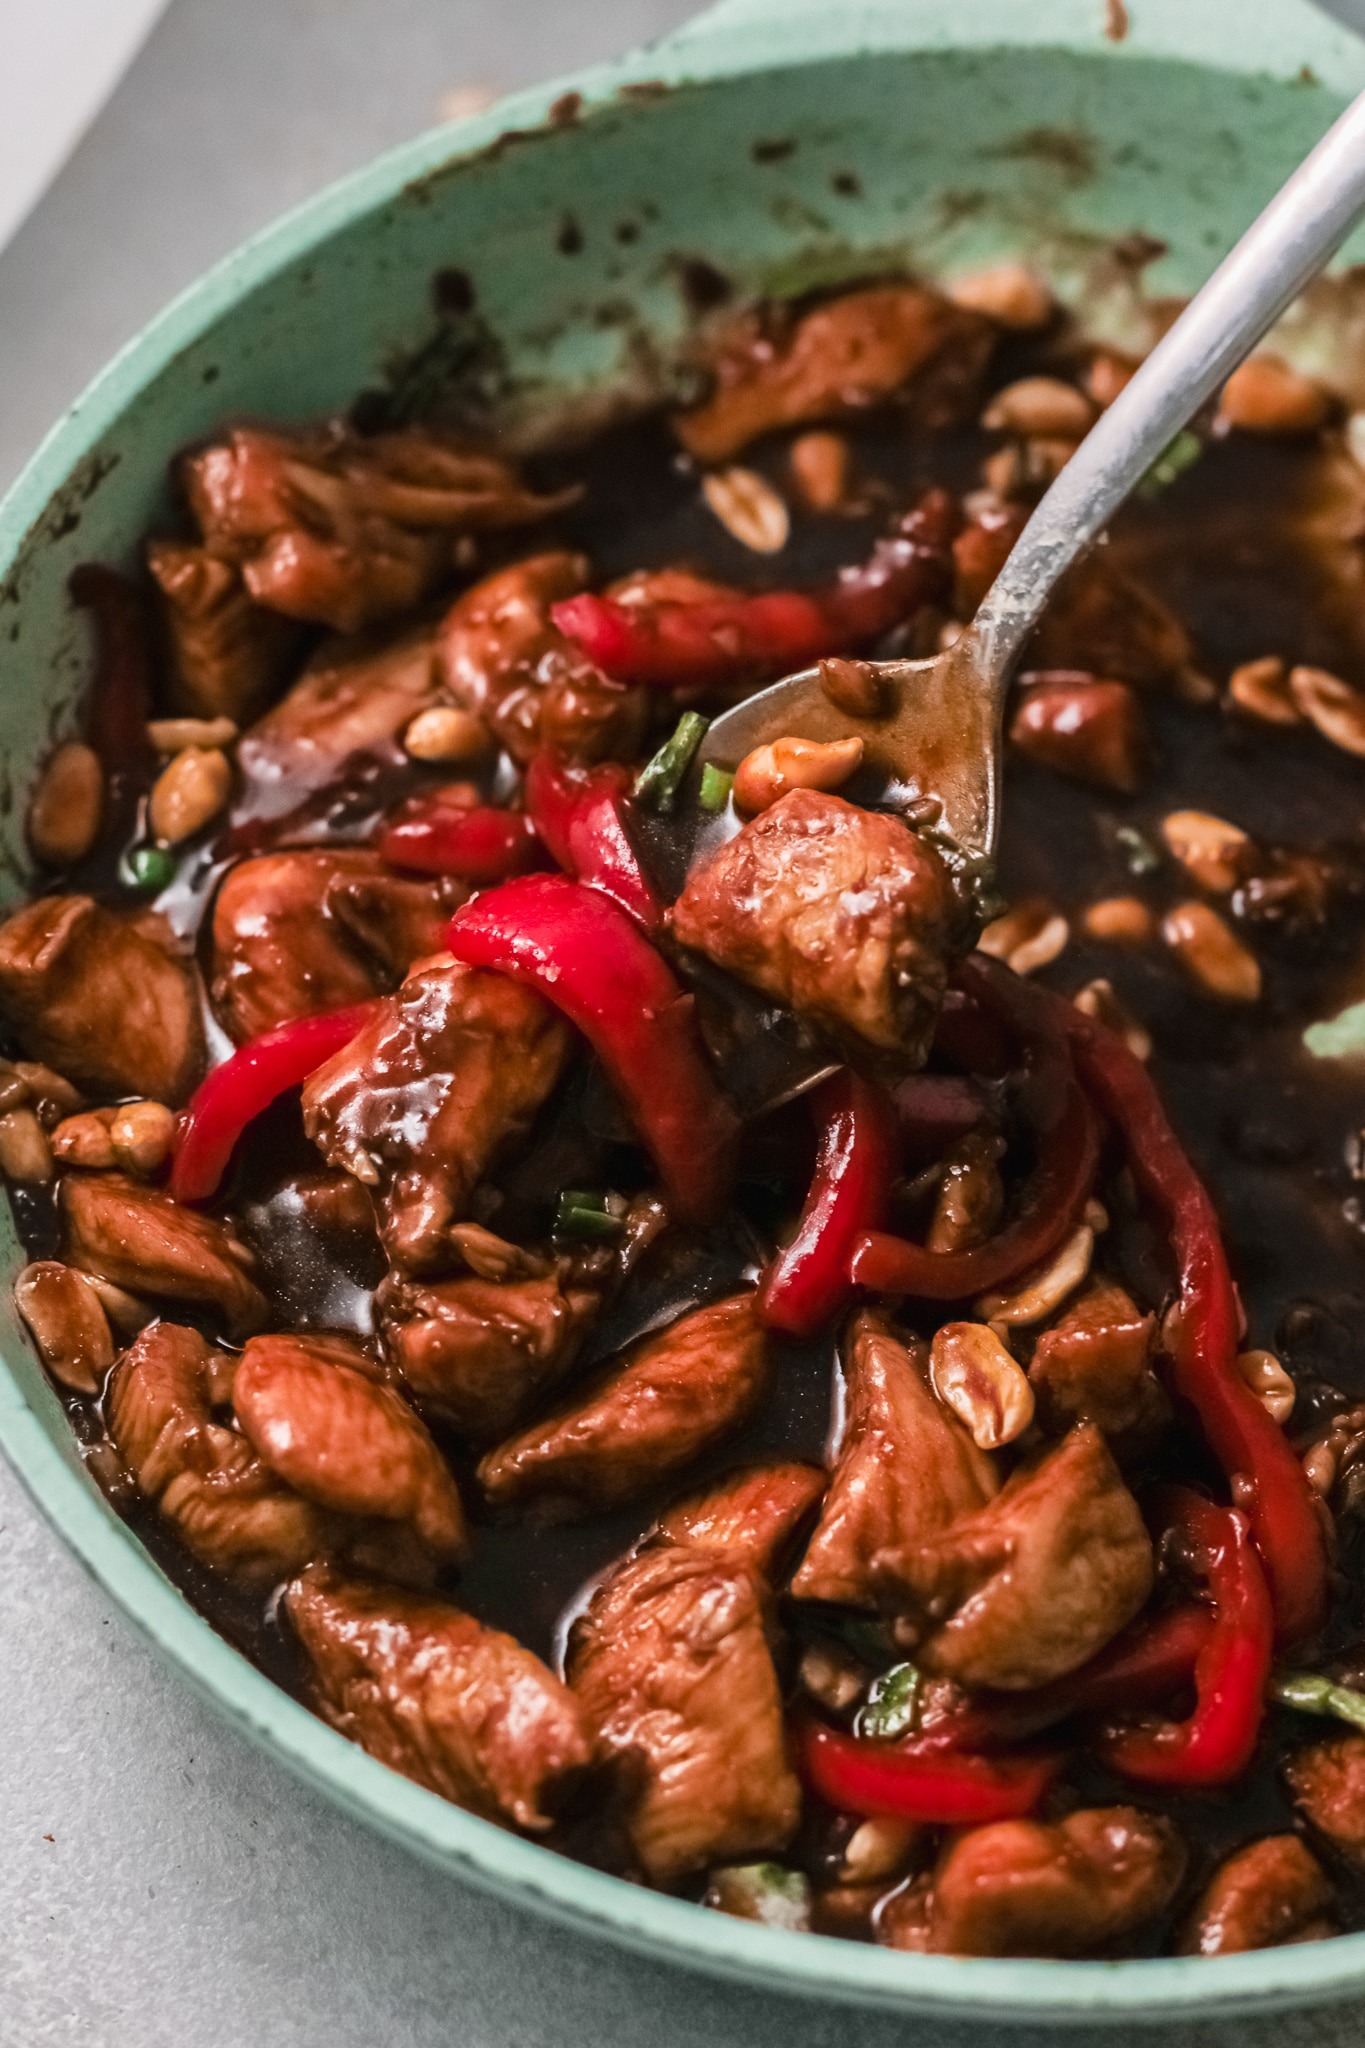 Better than Chinese takeout, make this Kung Pao Chicken at home. Closeup of the finished Kung Pao Chicken dish being scooped up with a large spoon.